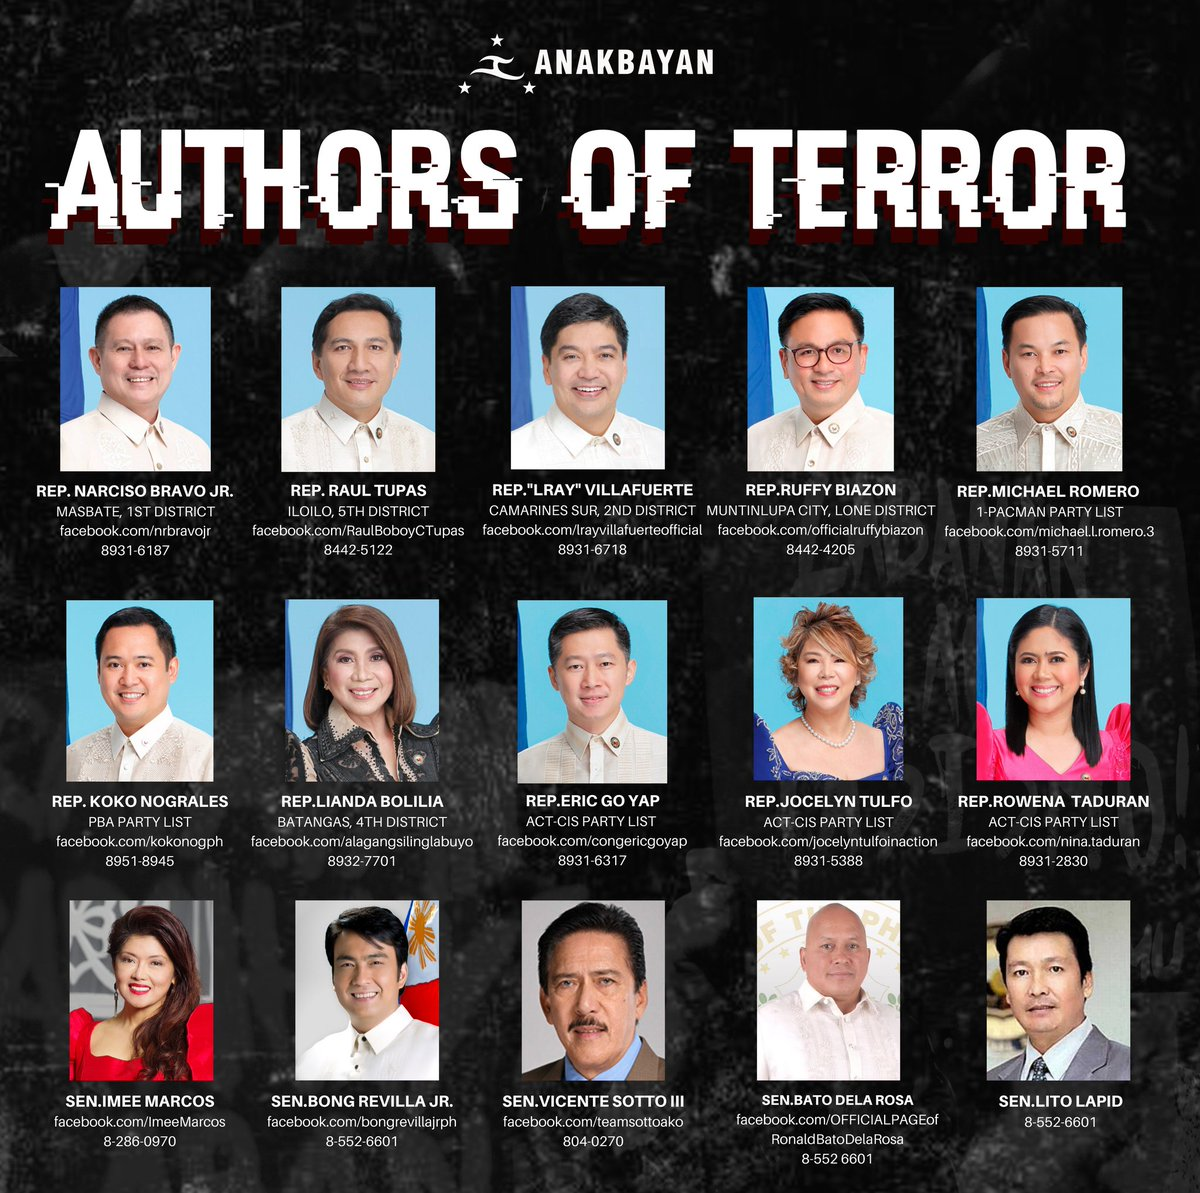 They are the principal sponsors and authors of the Anti-Terror Bill that endangers the political and civil rights of every Filipino to free speech and dissent!  Remember their names. Bombard their social media with our calls to JUNK THE TERROR BILL!  #JunkTerrorBill #OustDutertepic.twitter.com/ZNGRK3siYZ